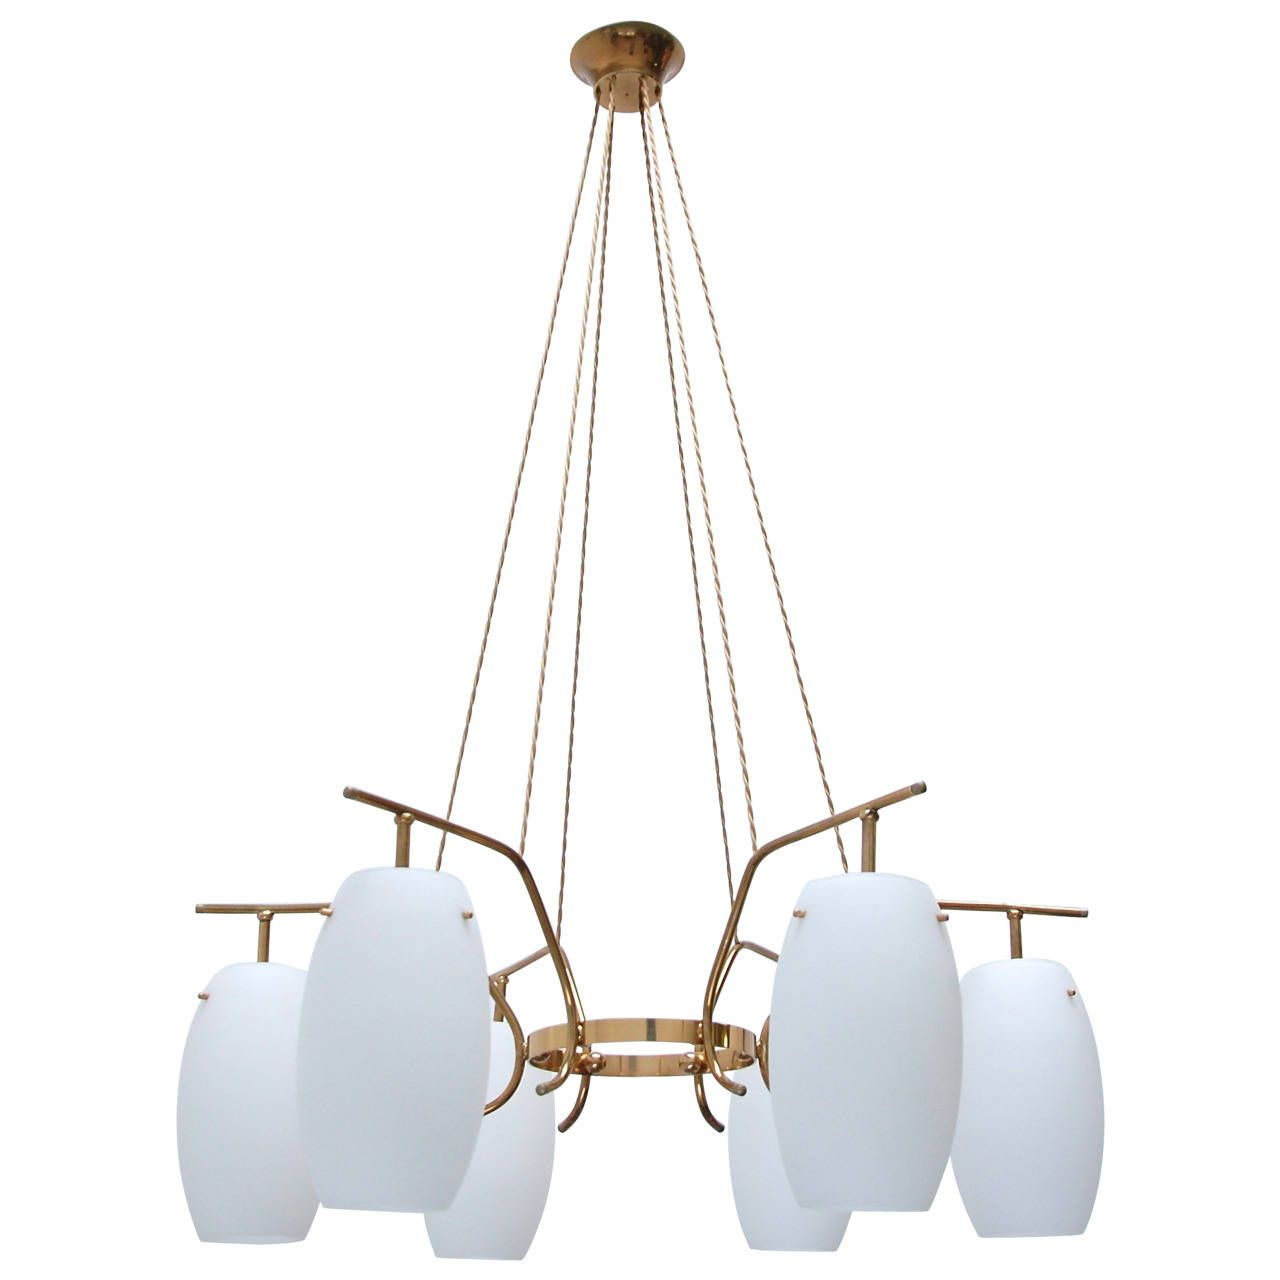 Solid Brass Italian Chandelier From A Unique Collection Of